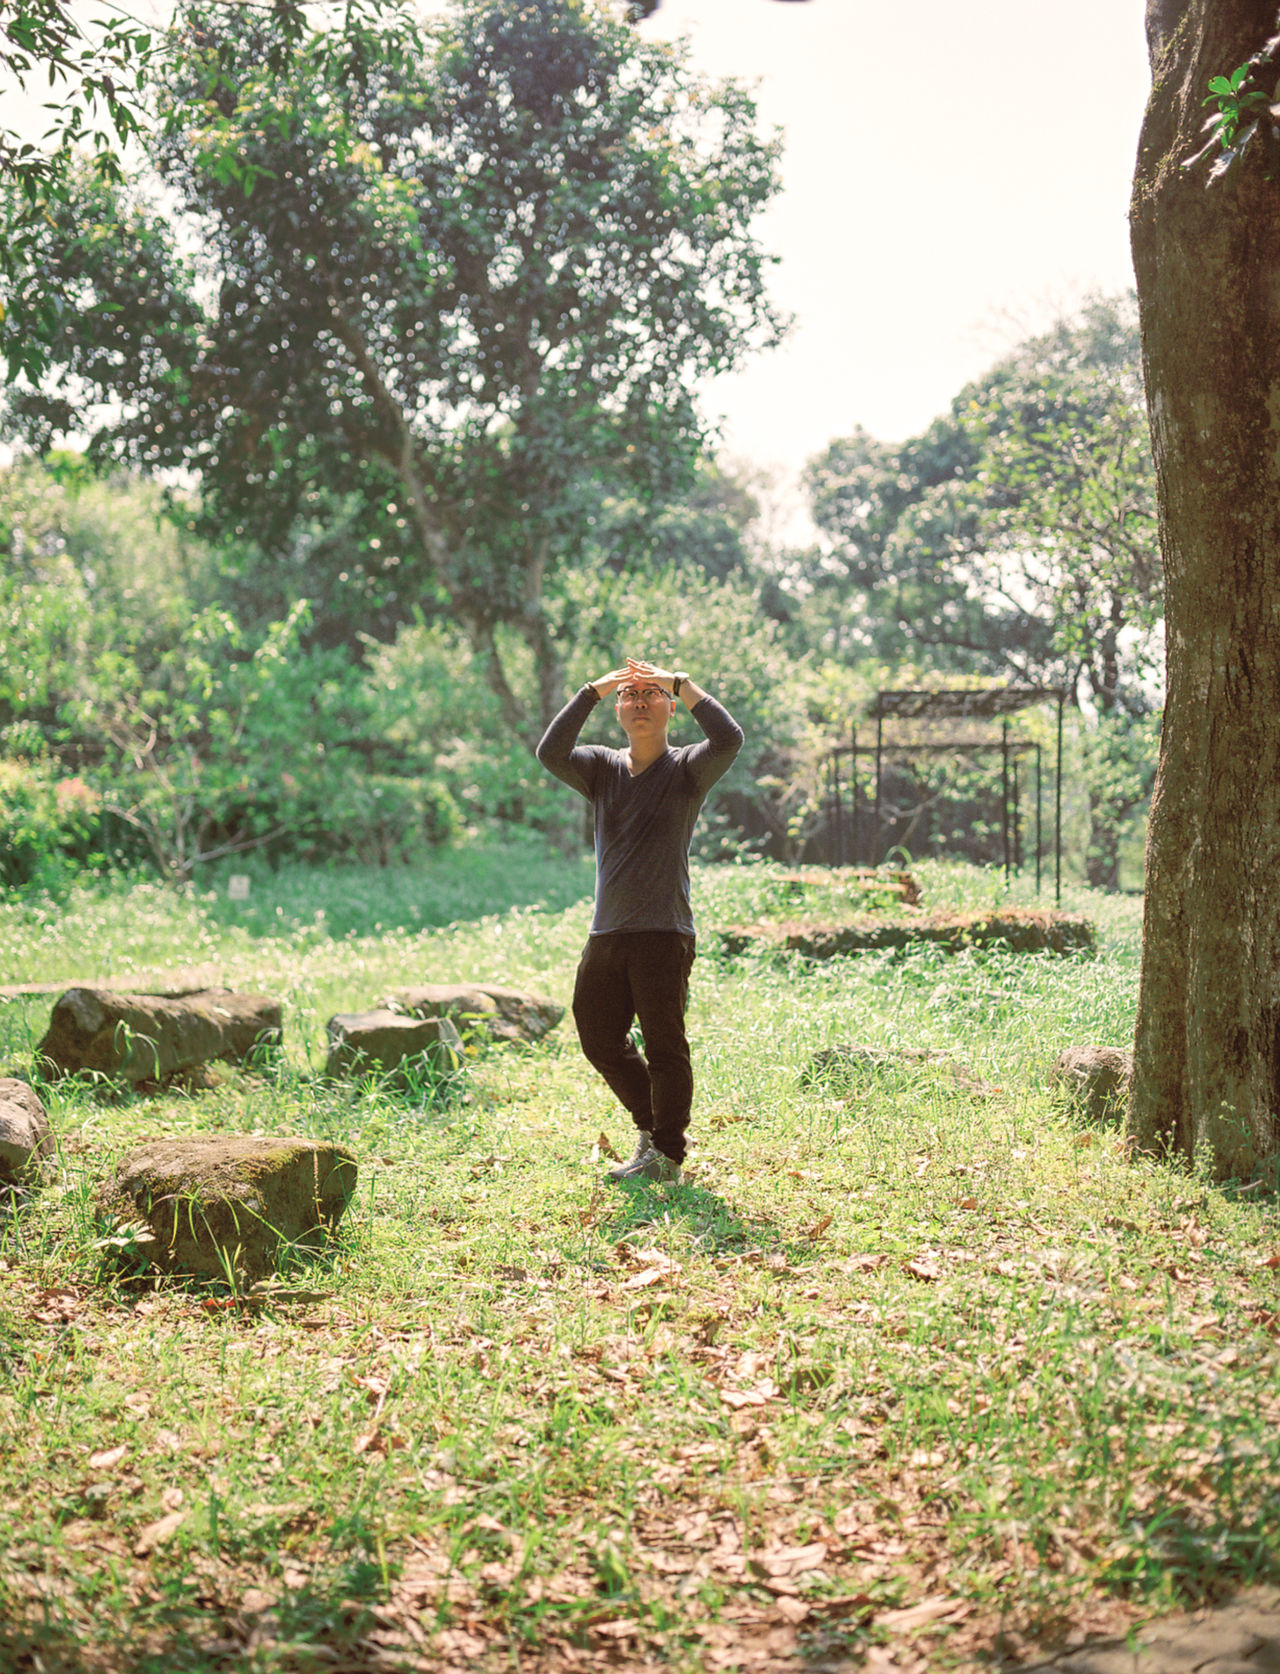 Autum Swinger Day Fence Field Forest Grass Grassy Green Green Color Hanging Out Landscape One Person Outdoors Park Portrait Standing Tree Tree Trunk Yama